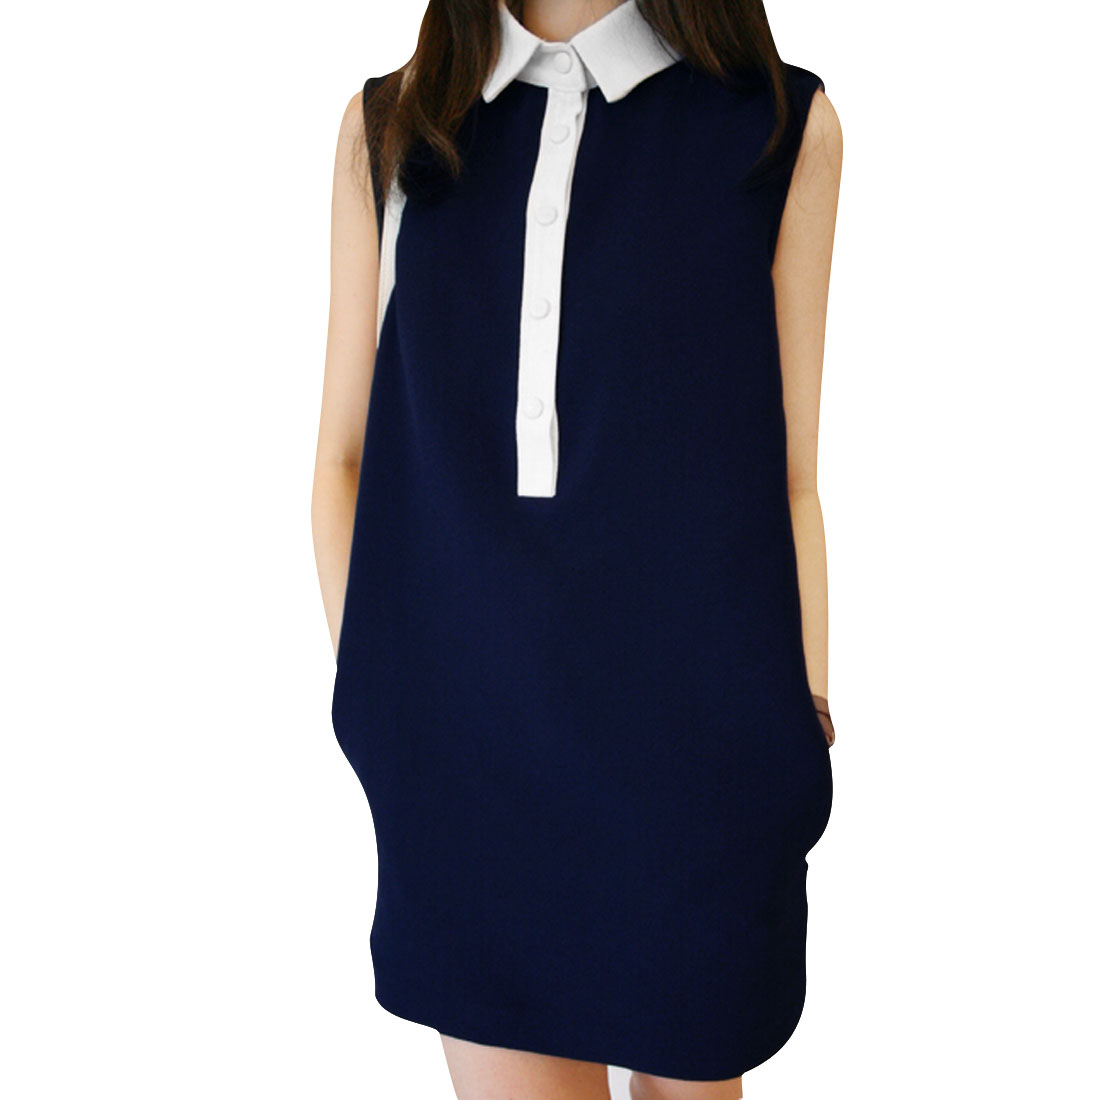 Lady Dark Blue Point Collar Sleeveless Single Breasted Upper Mini Dress XS